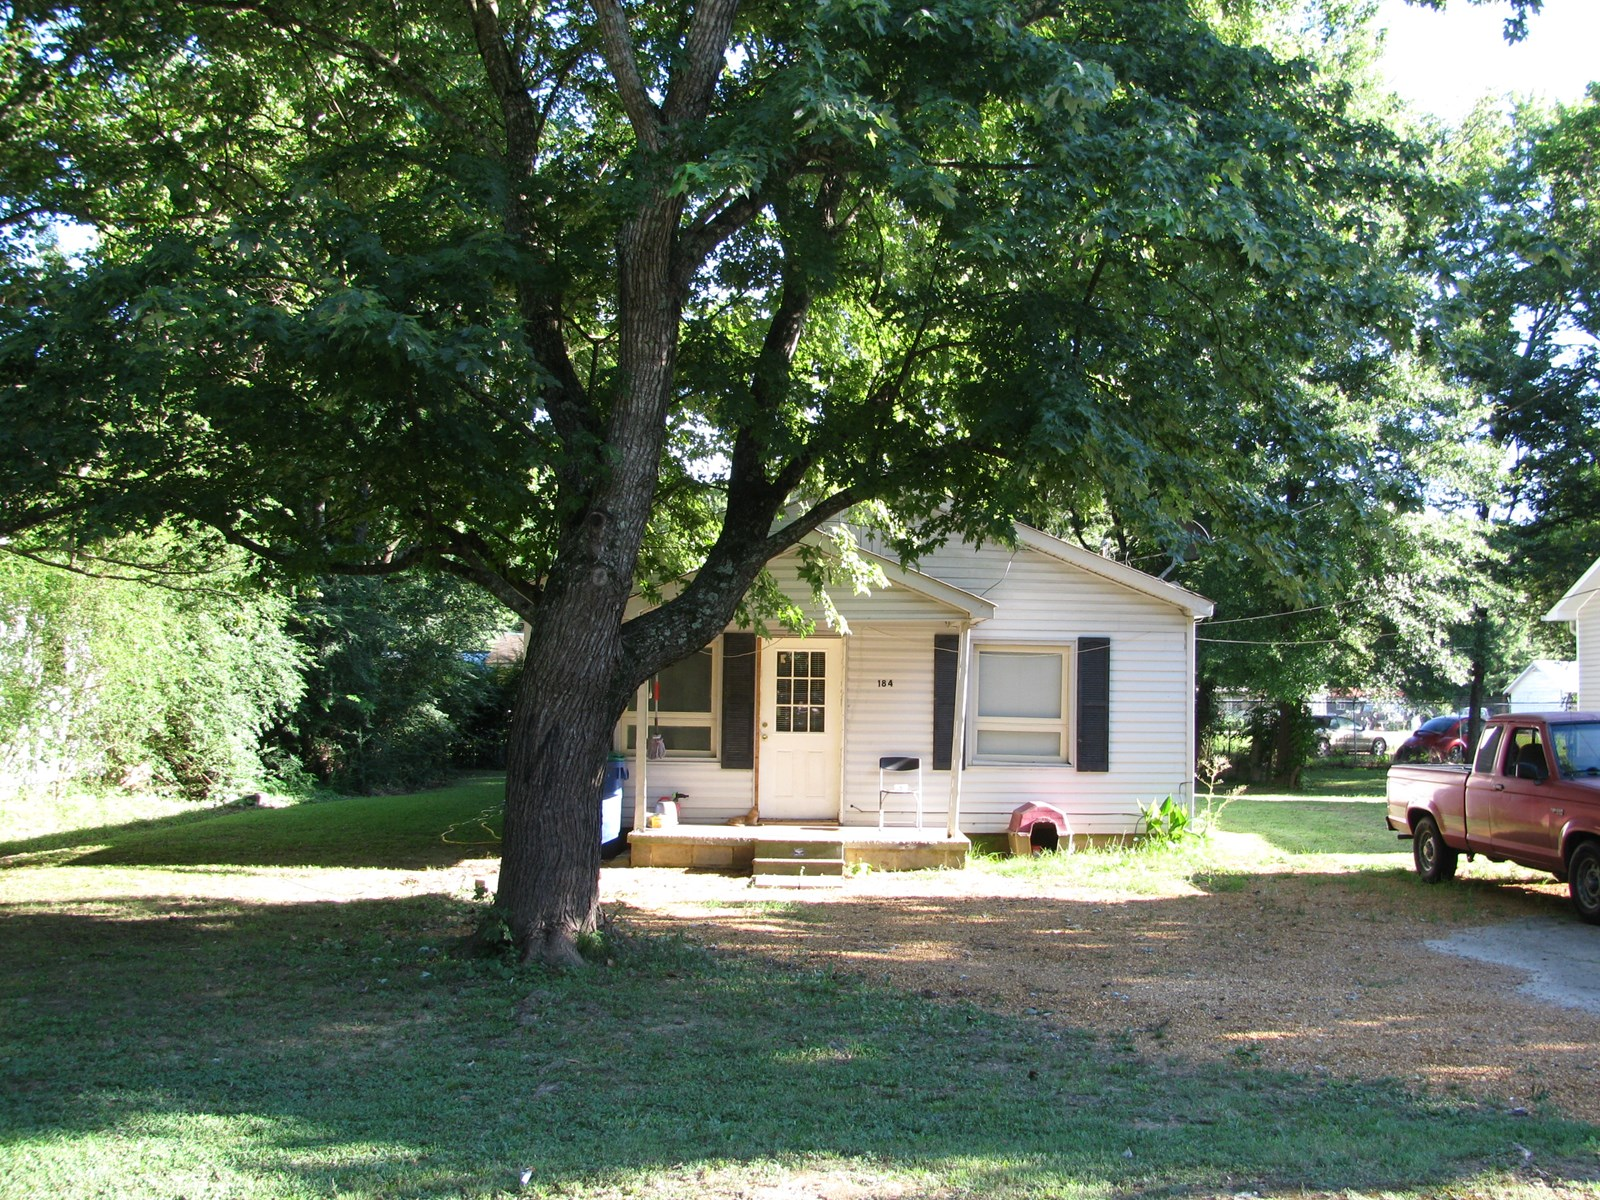 RENT HOUSE FOR SALE IN SAVANNAH, TN, HOME IN TOWN